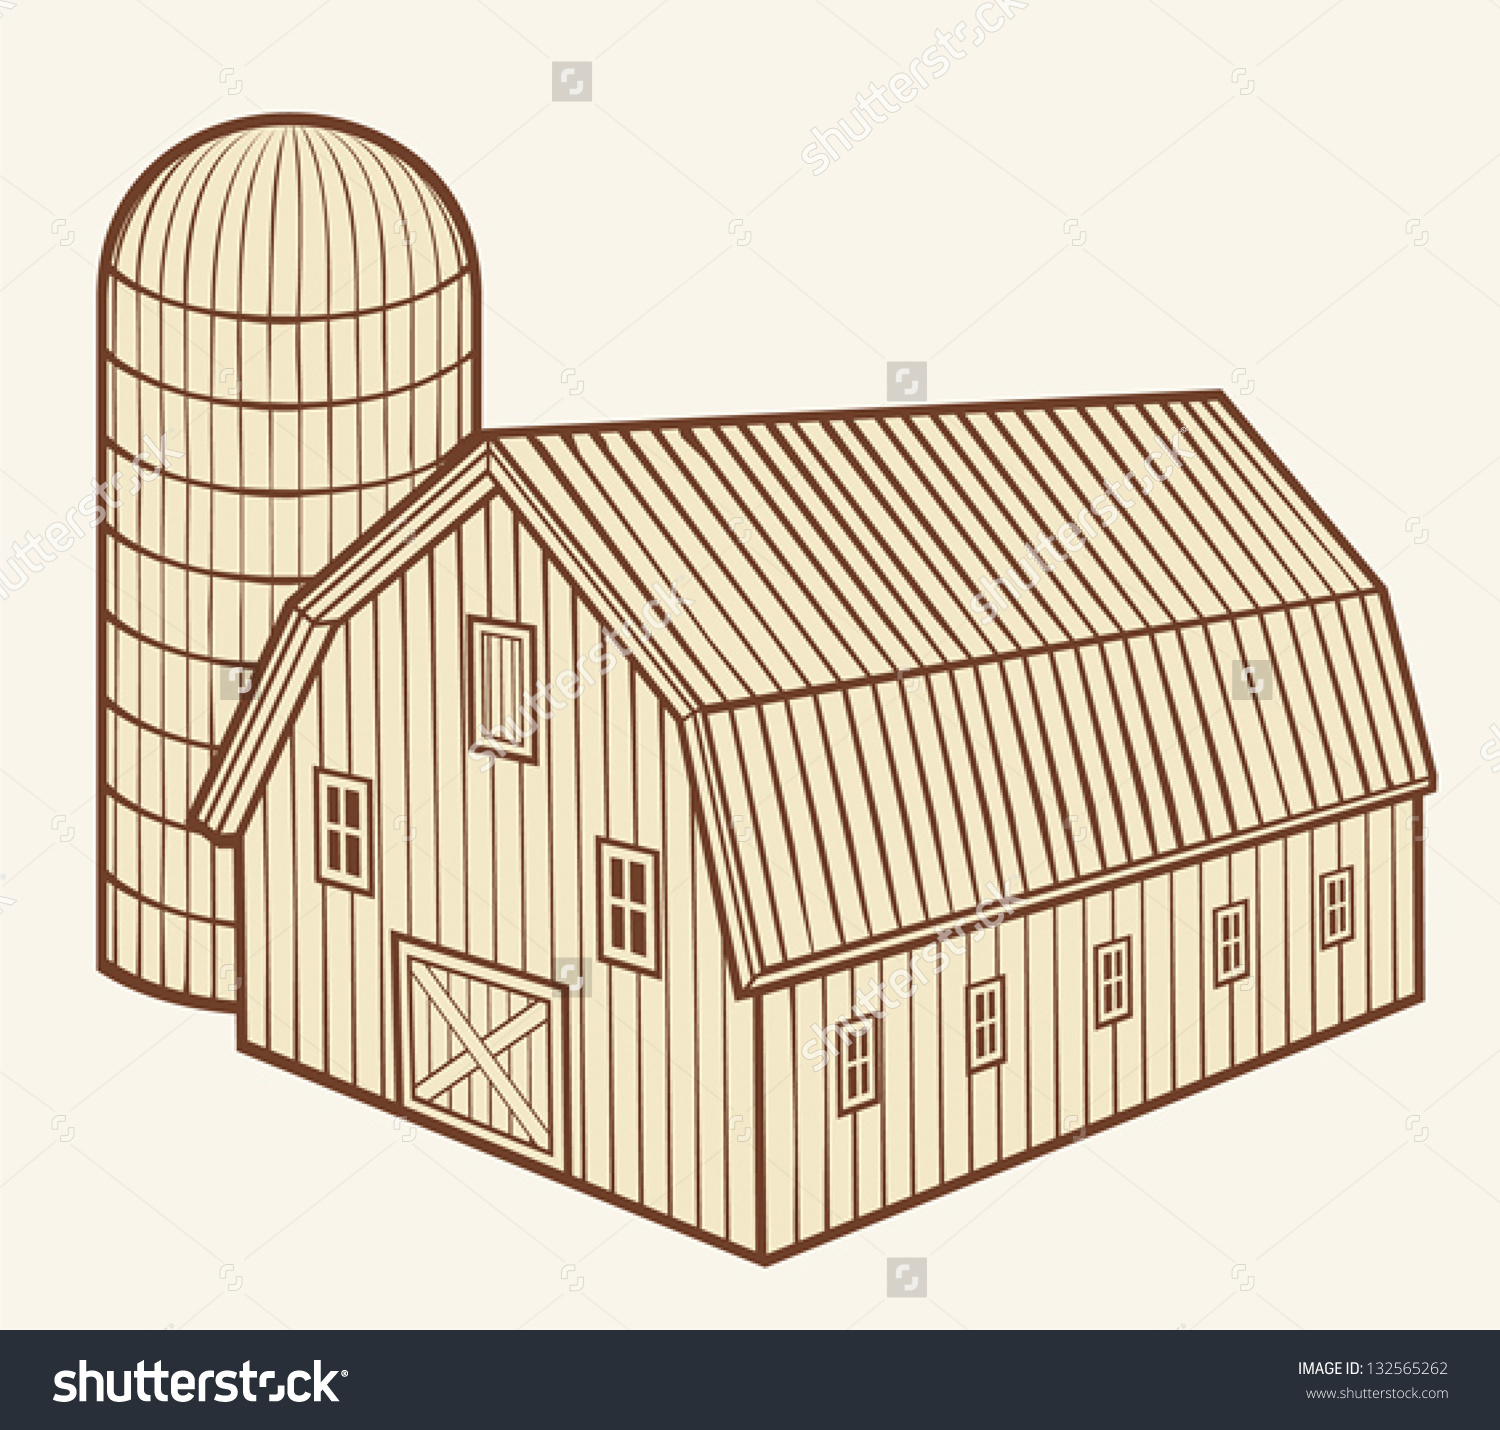 Barn Silo Granary Stock Vector 132565262.